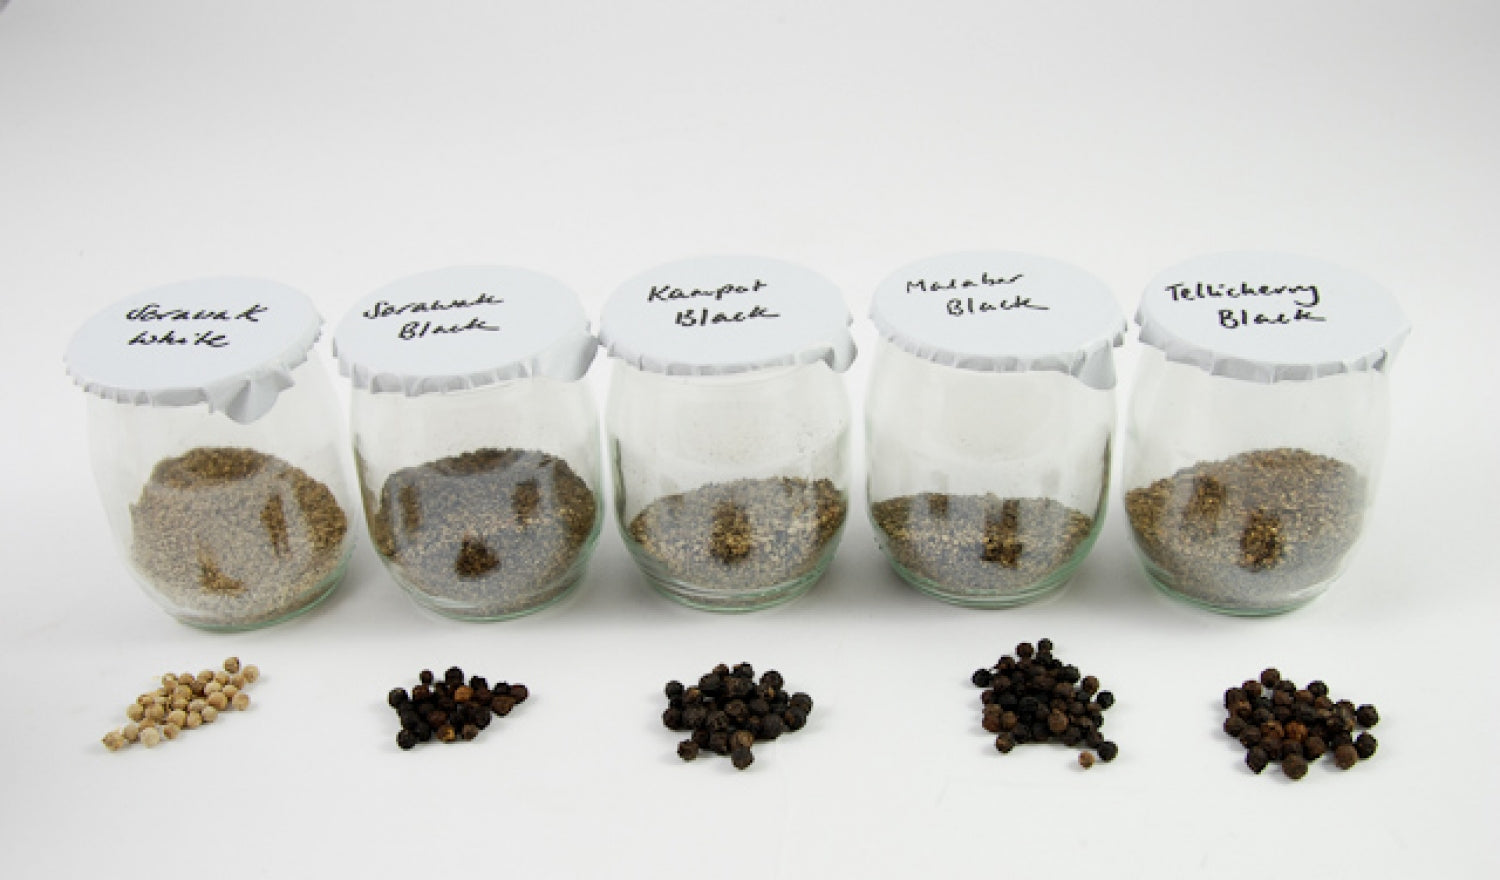 World Pepper Guide & Tasting Notes